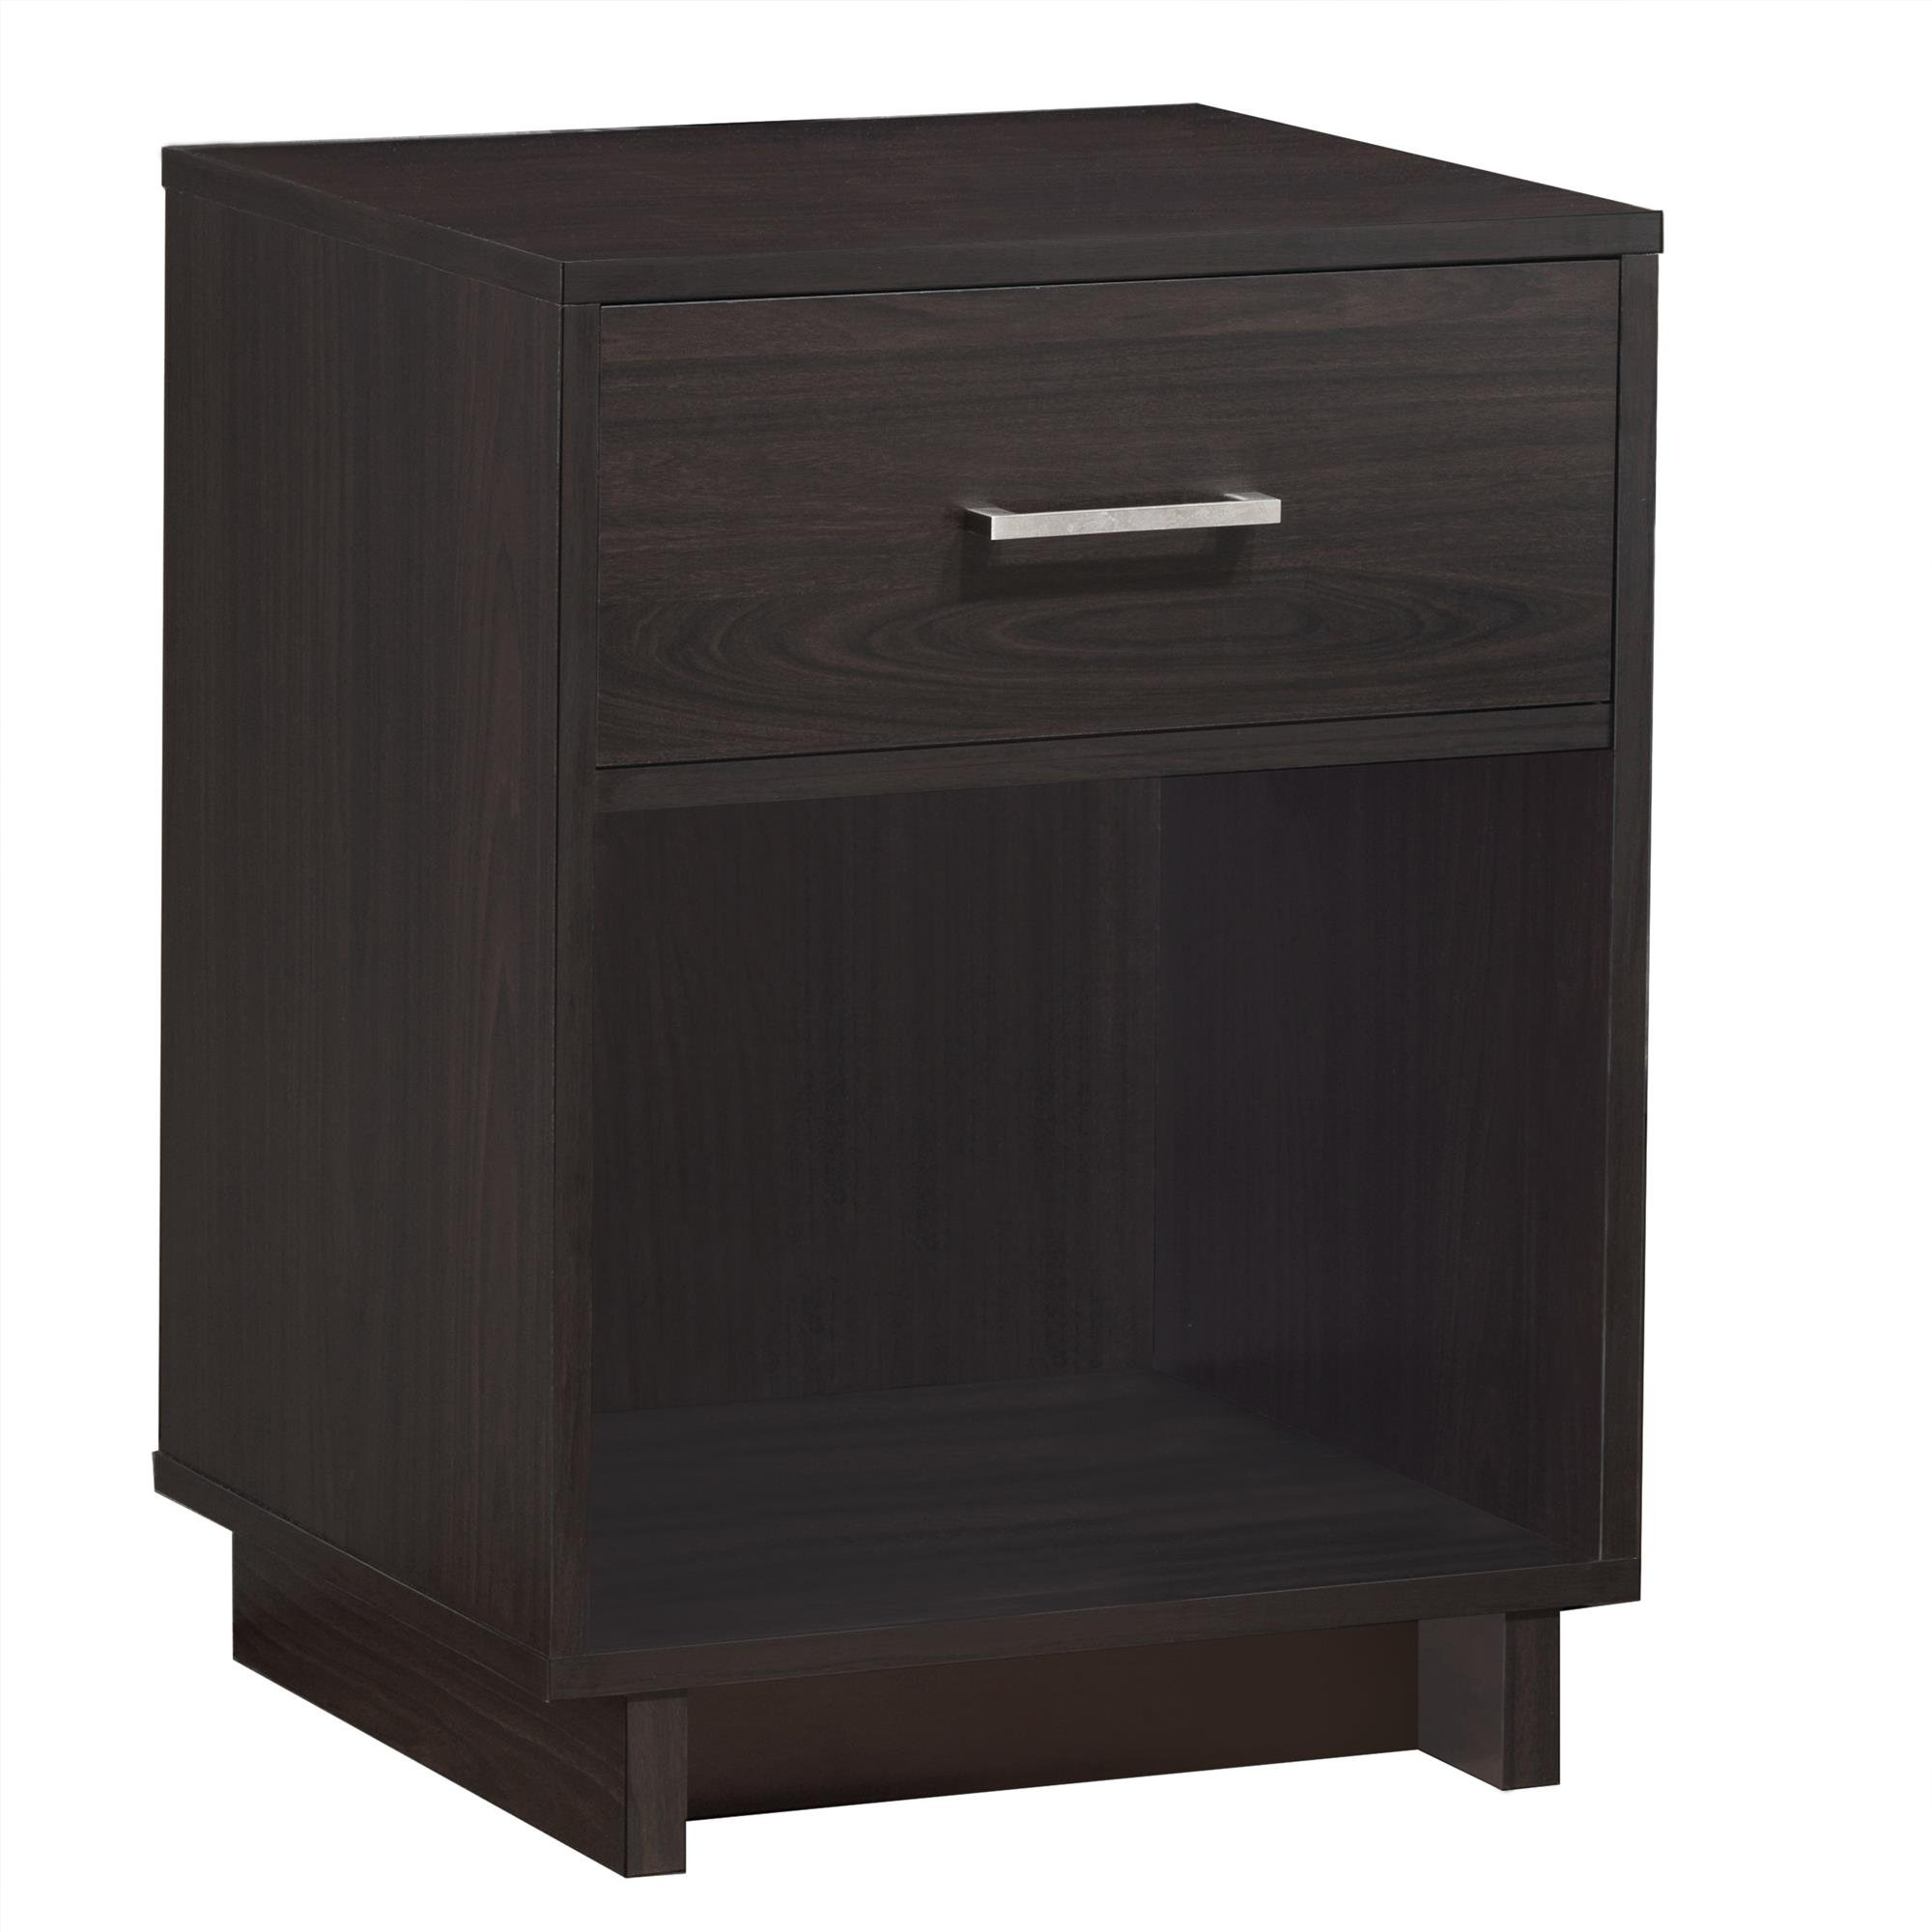 Ameriwood Home 5967303COM Colebrook Wood, Nightstand